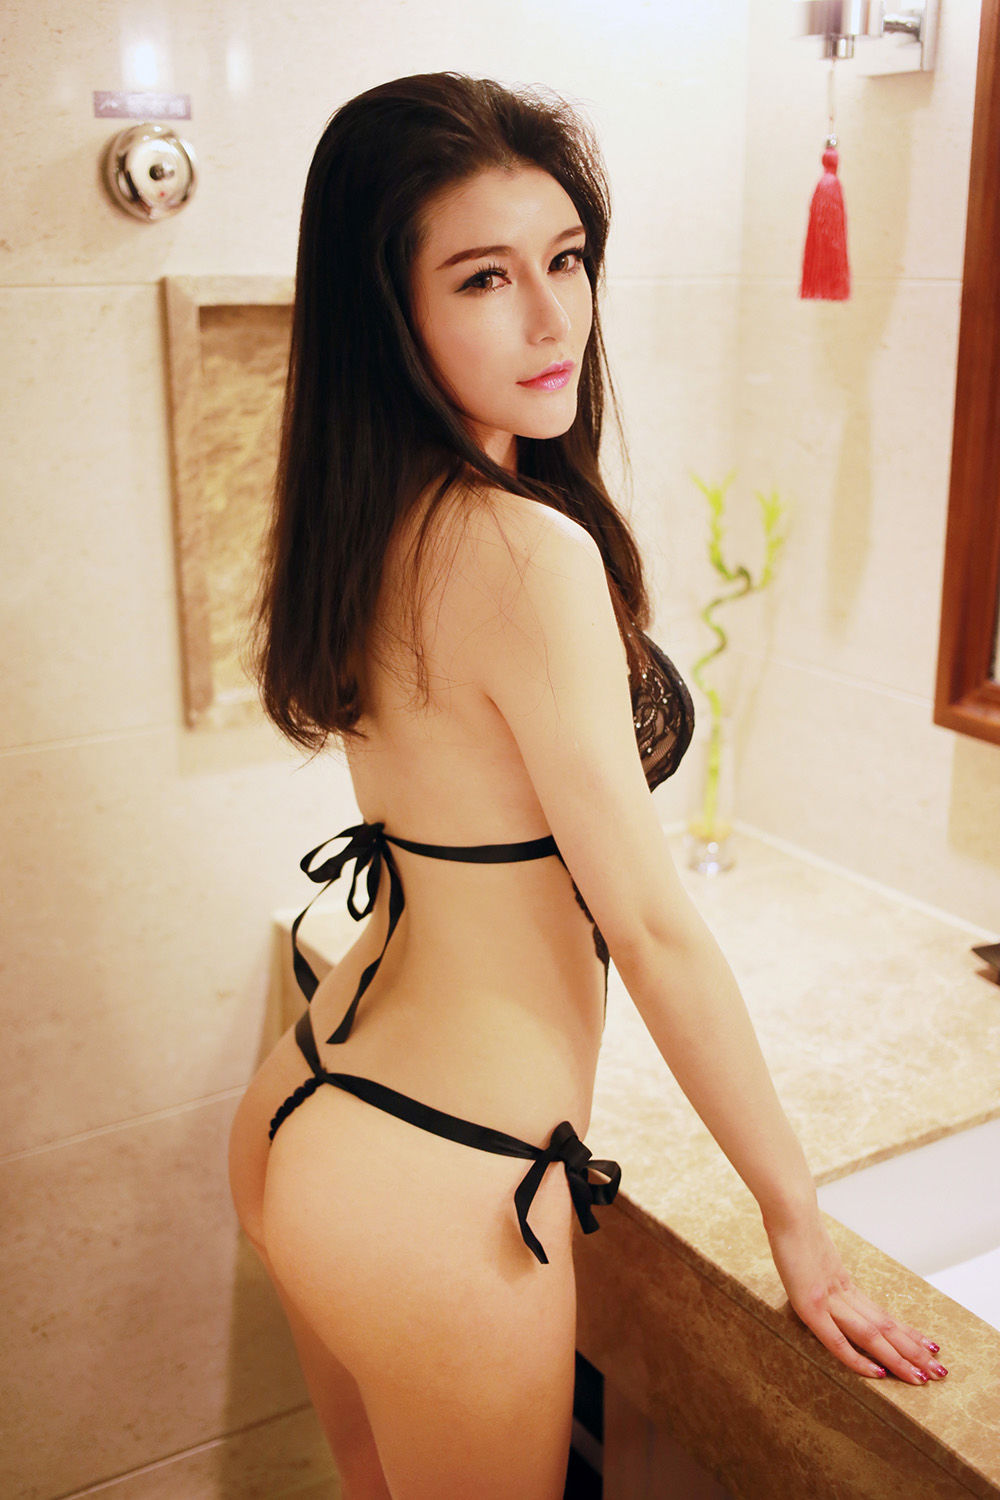 [MyGirl] Vol.010 Nancy Xiao Zi 46P, Bikini, mygirl, Nancy Xiao Zi